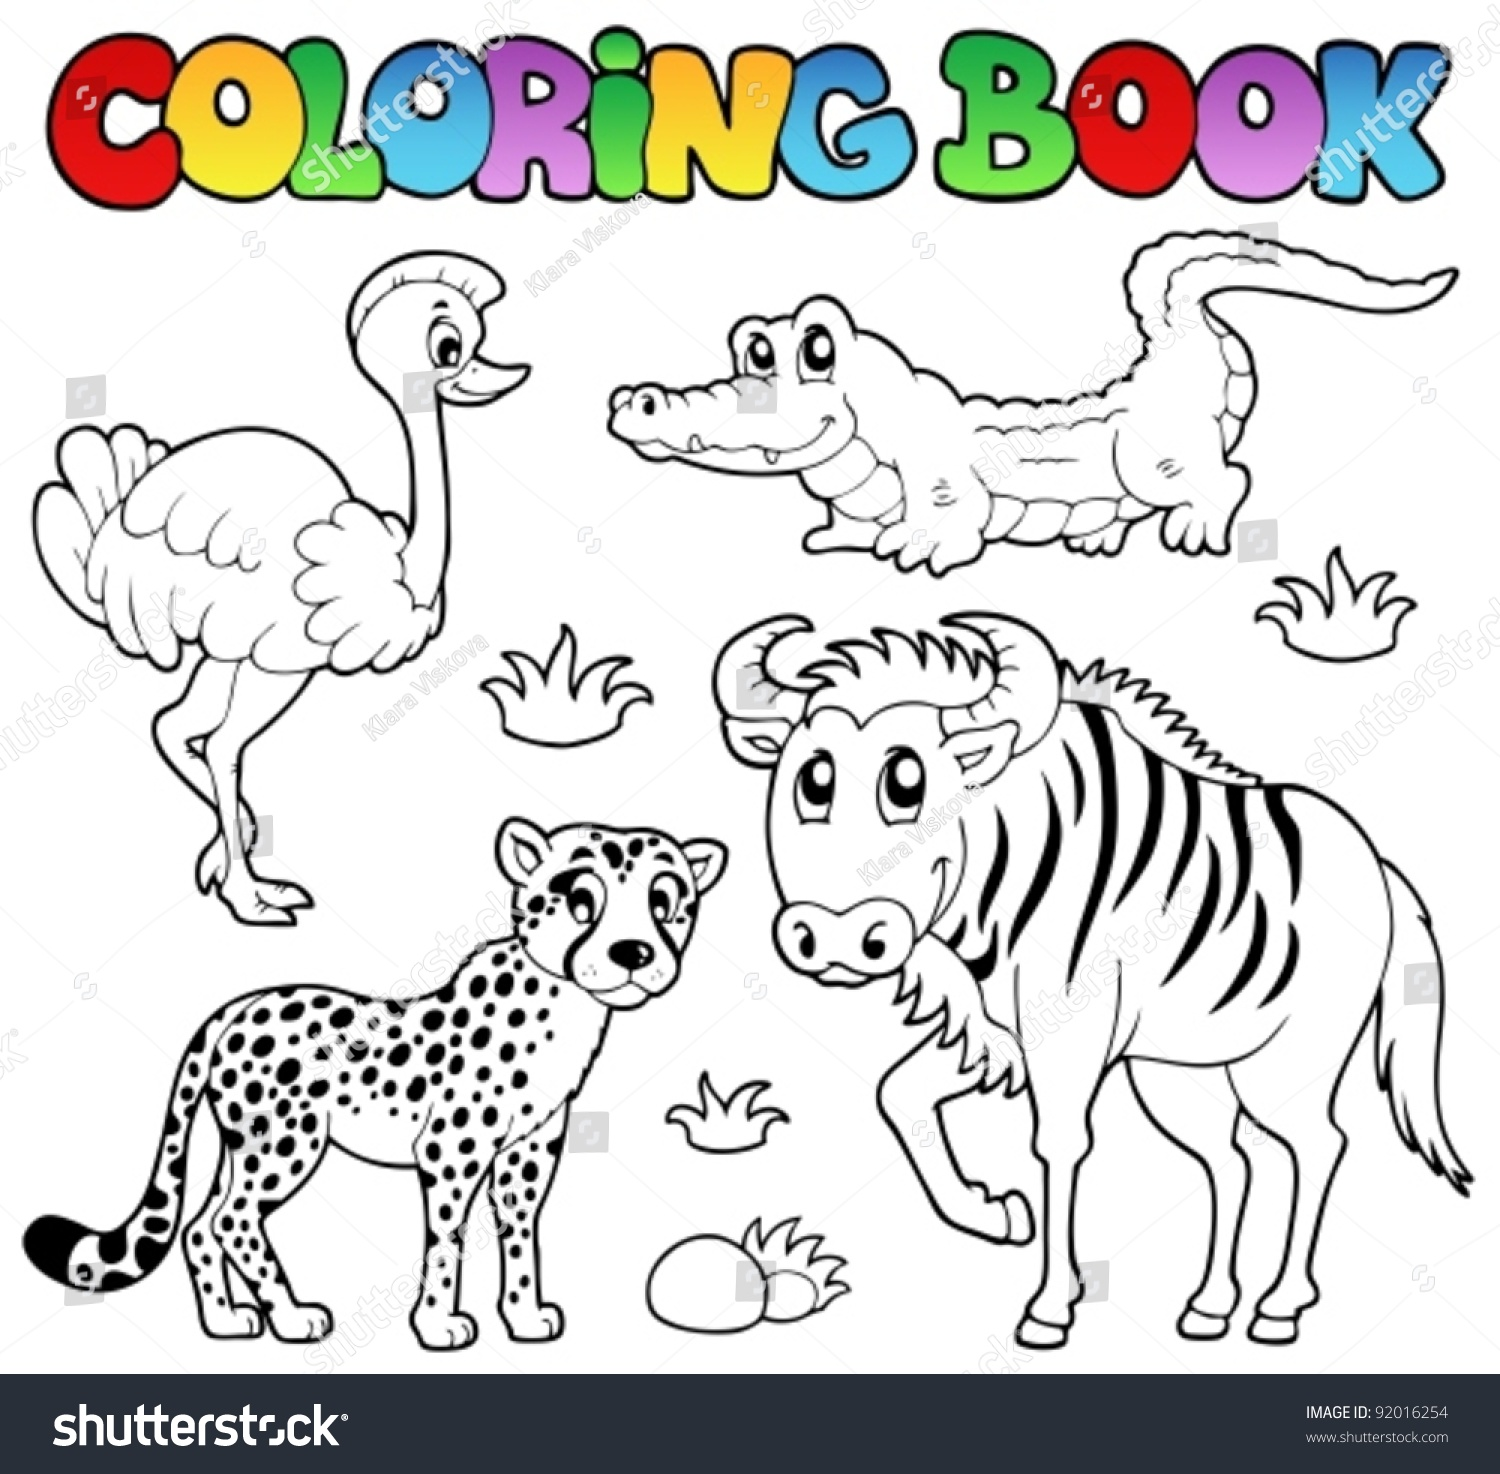 The zoology coloring book - Coloring Book Savannah Animals 2 Vector Illustration